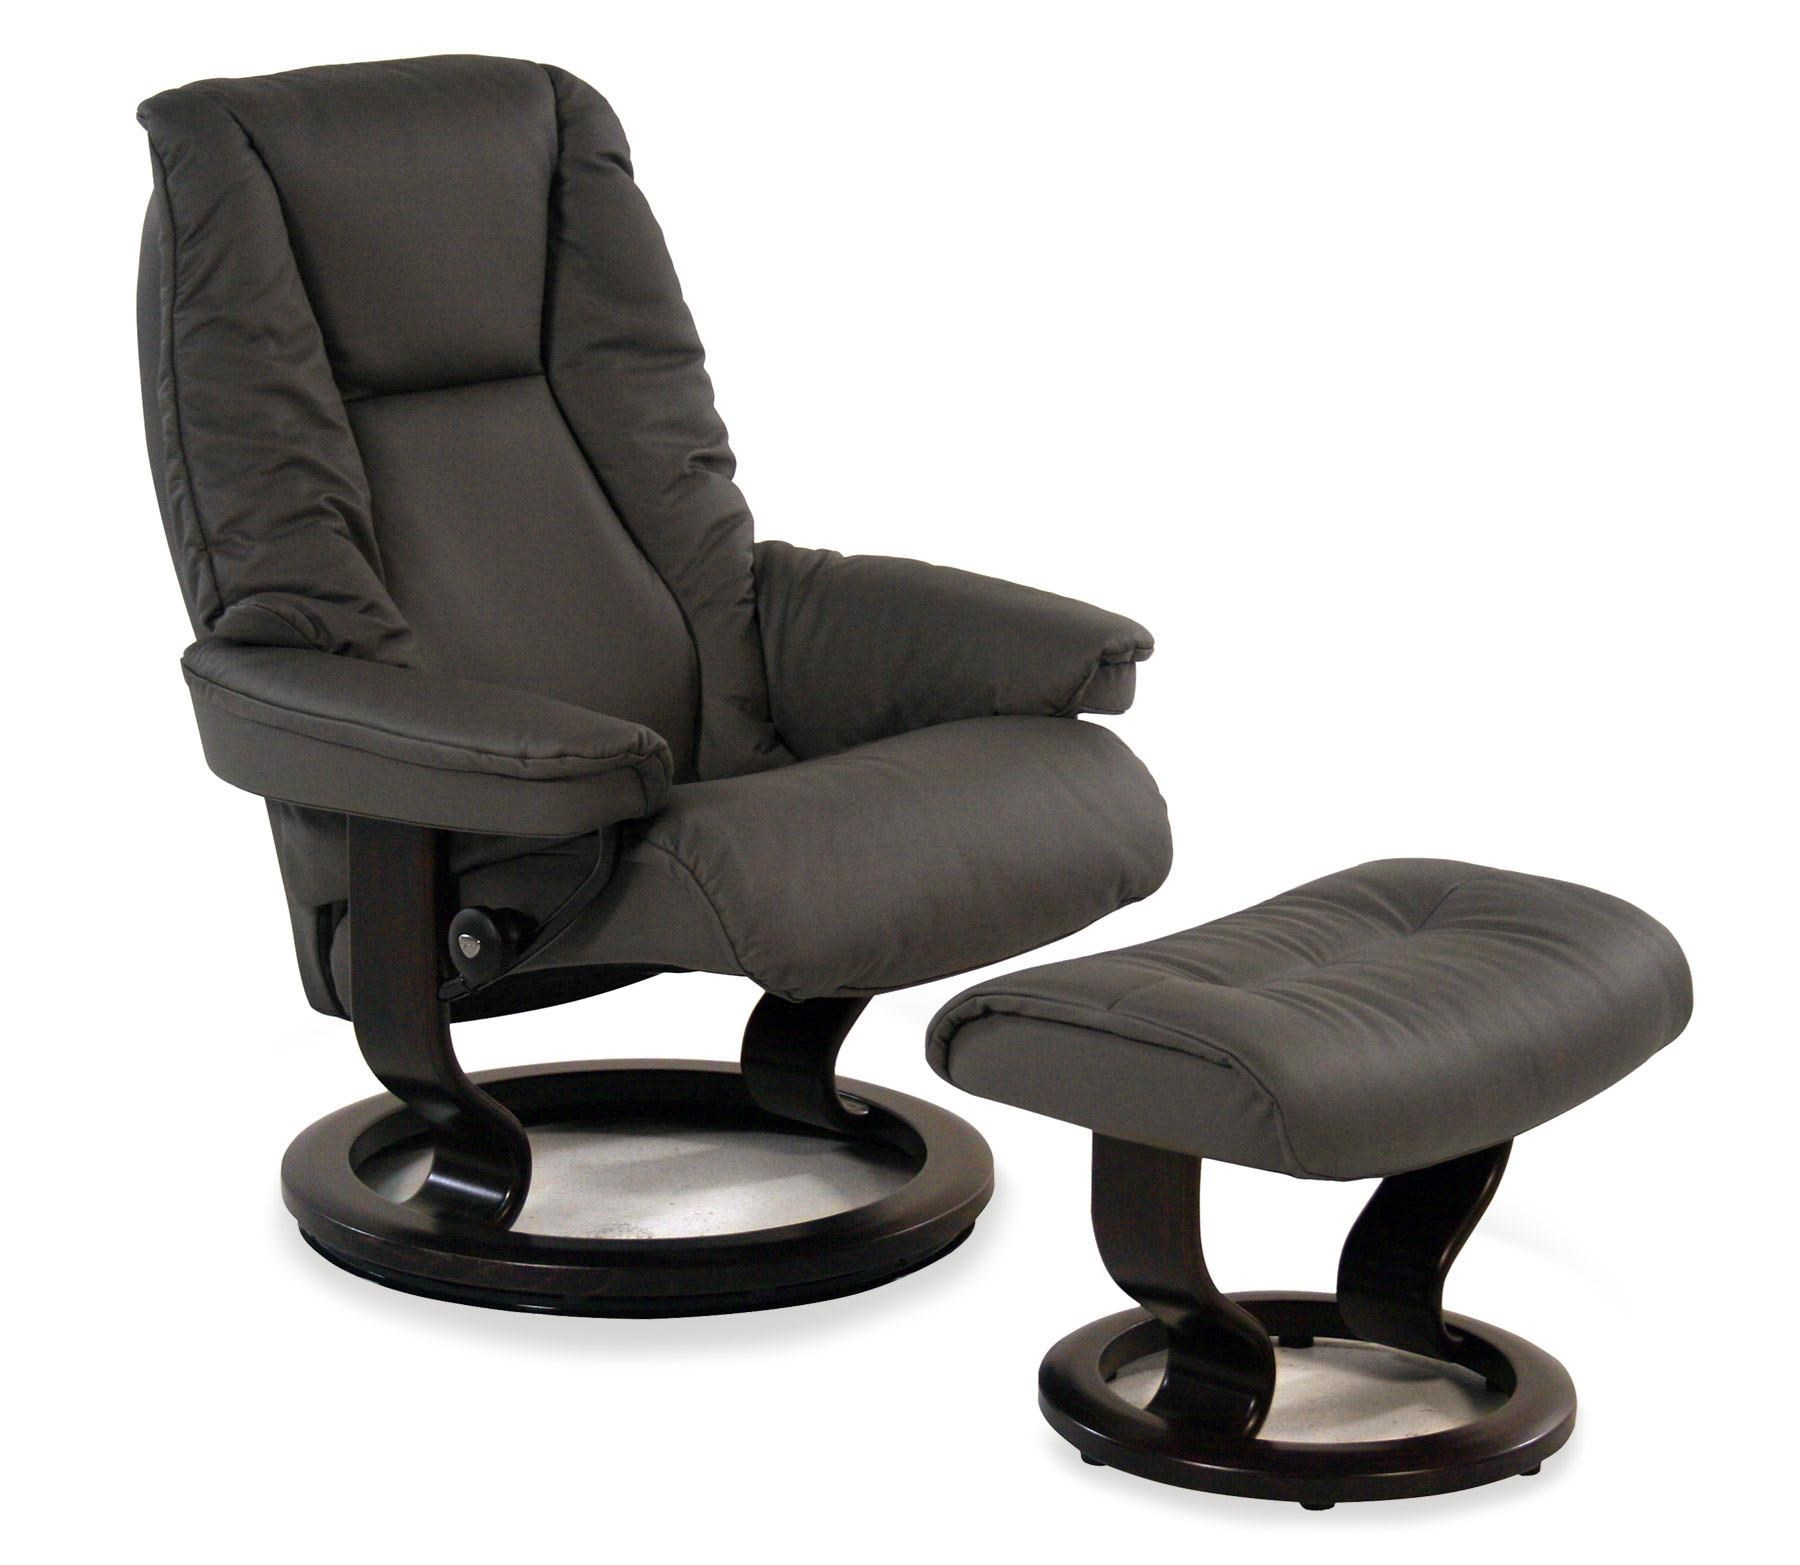 Stressless Paloma Live Medium Reclining Chair Ottoman Paloma Metal Grey W Classic Base By Stressless By Ekornes At Rotmans